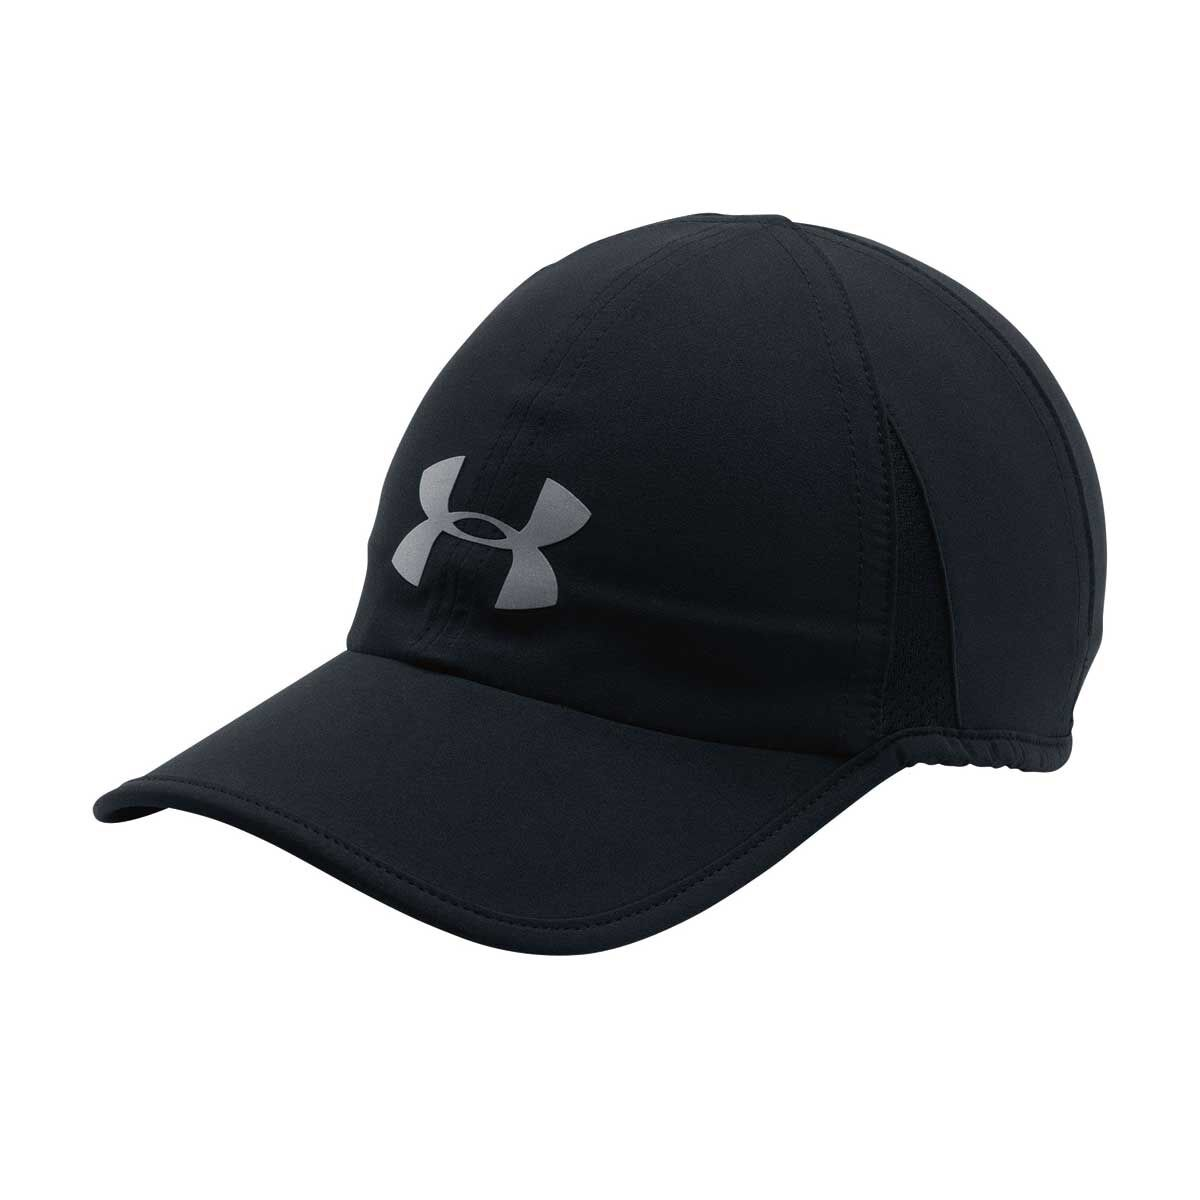 dca2c32acd01 ... france under armour shadow cap 4 black osfa rebelhi res 839e4 c1b74